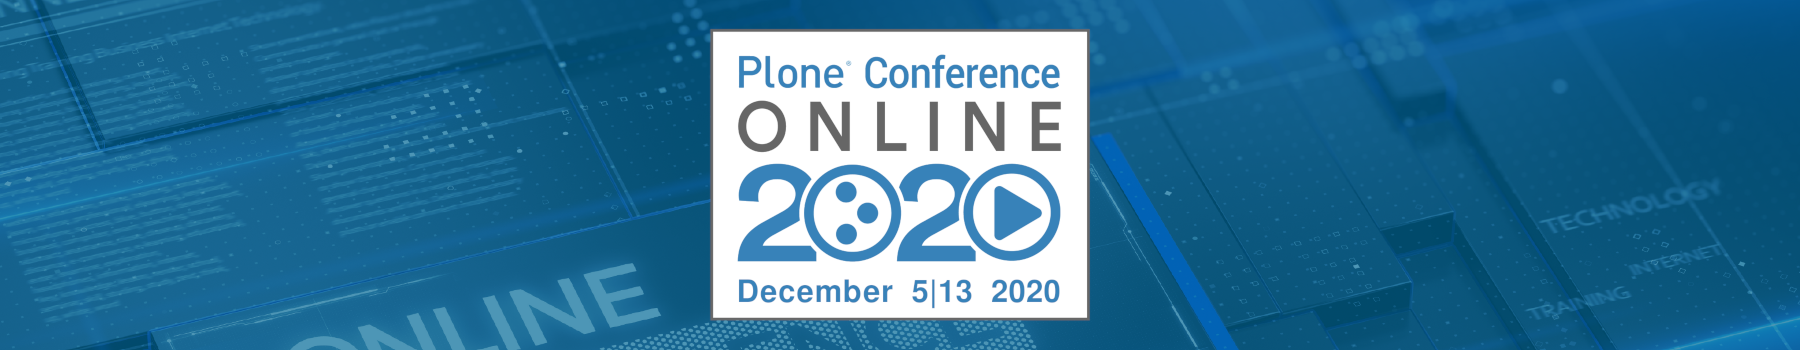 Plone Conference 2020